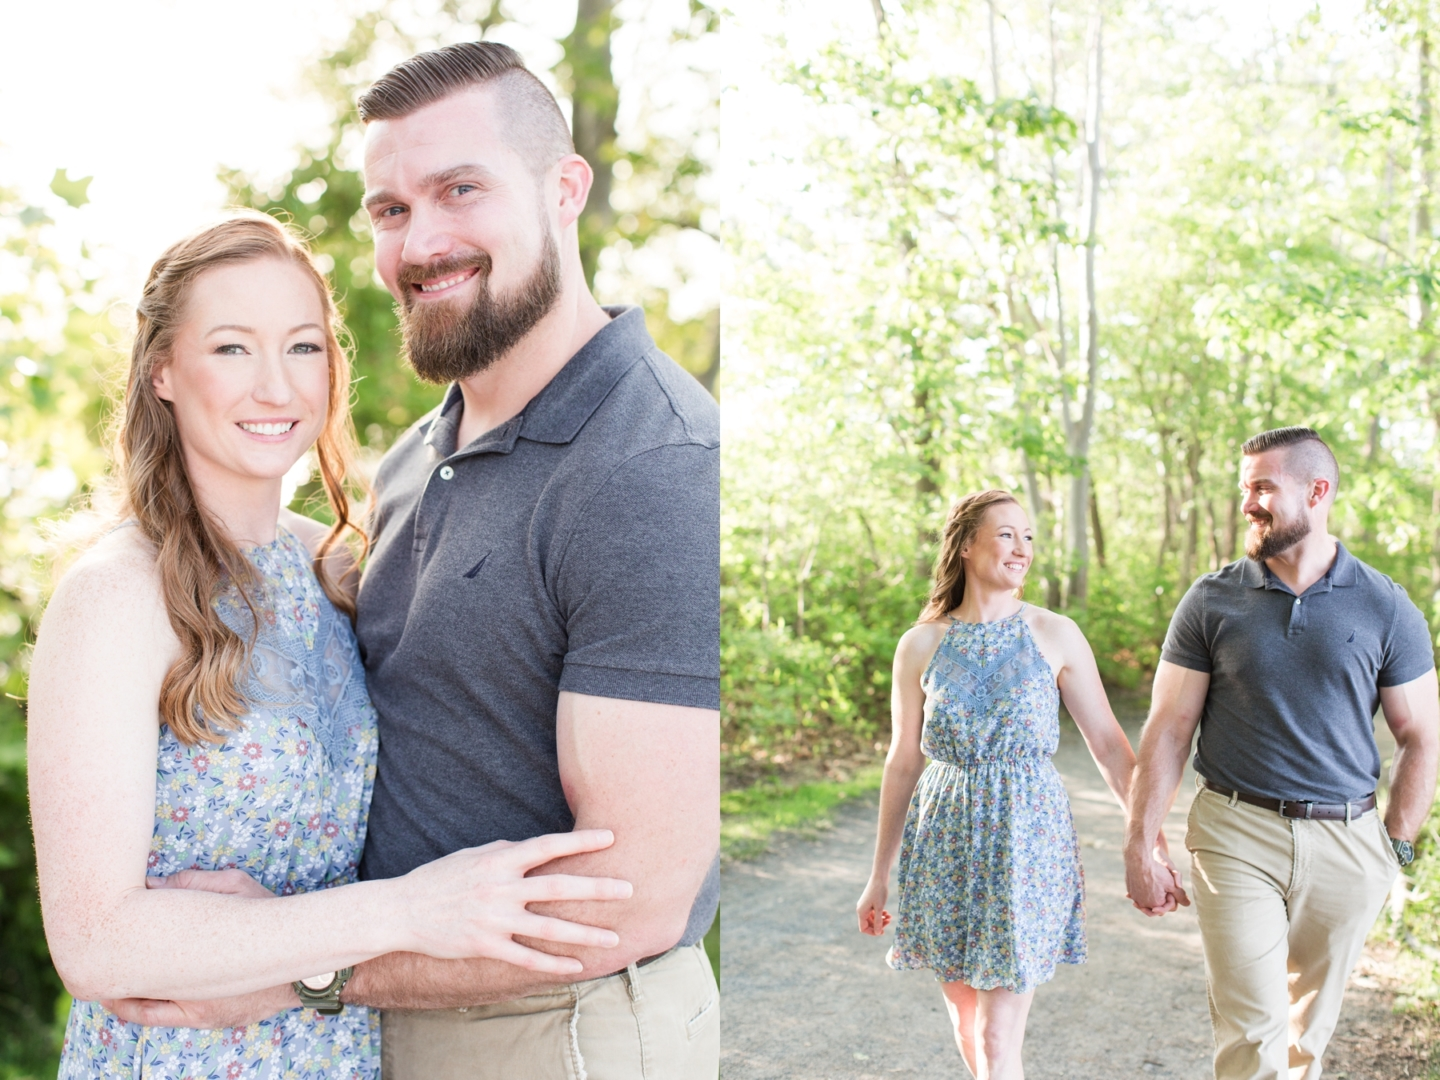 Sara and Chris' Engagement Photography at Manasquan Reservoir